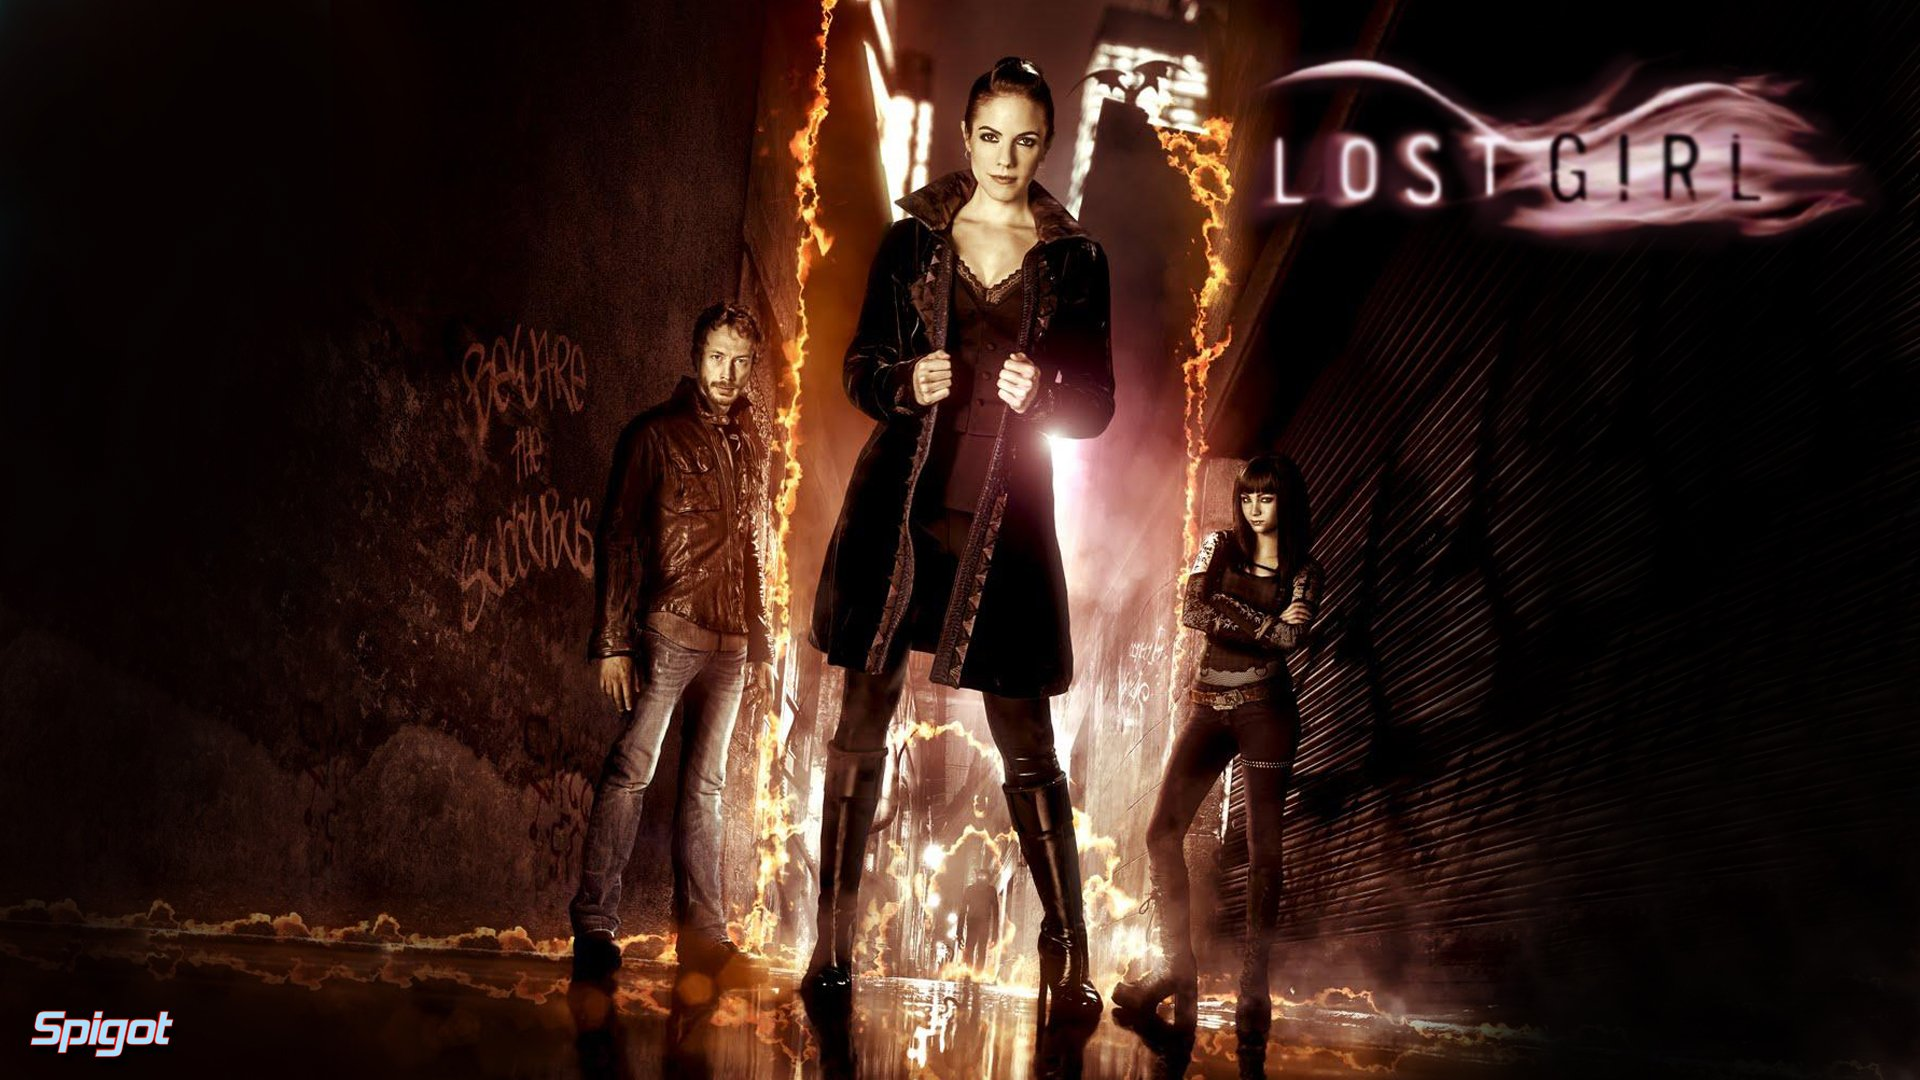 TV Show - Lost Girl  Wallpaper